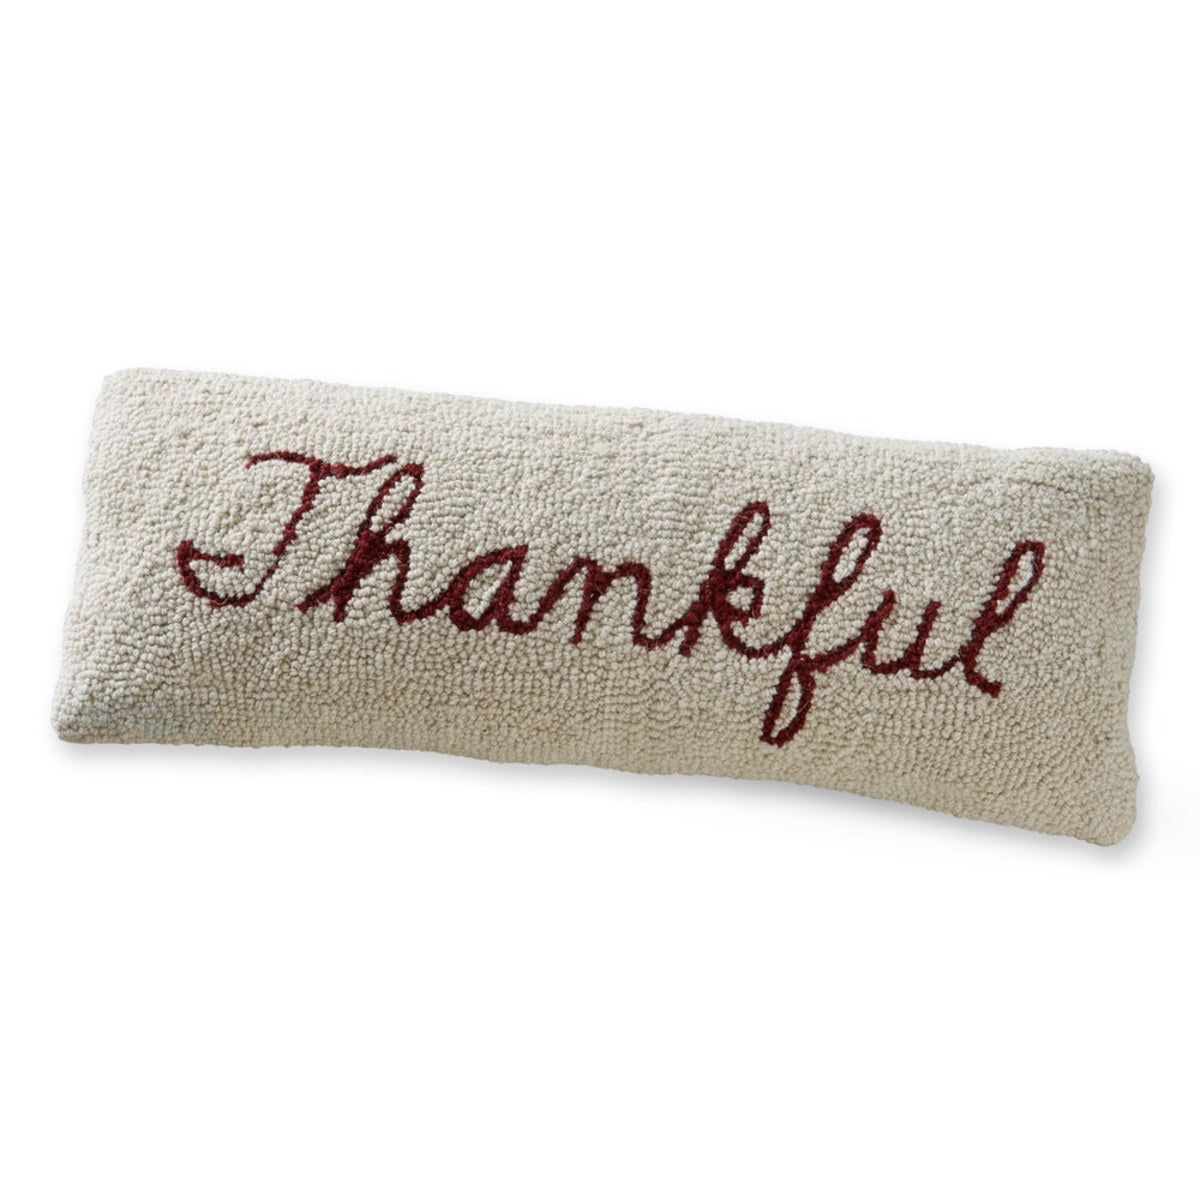 "Hand-Hooked Wool Thankful Lumbar Pillow 22"" x 8"" - Thankful"